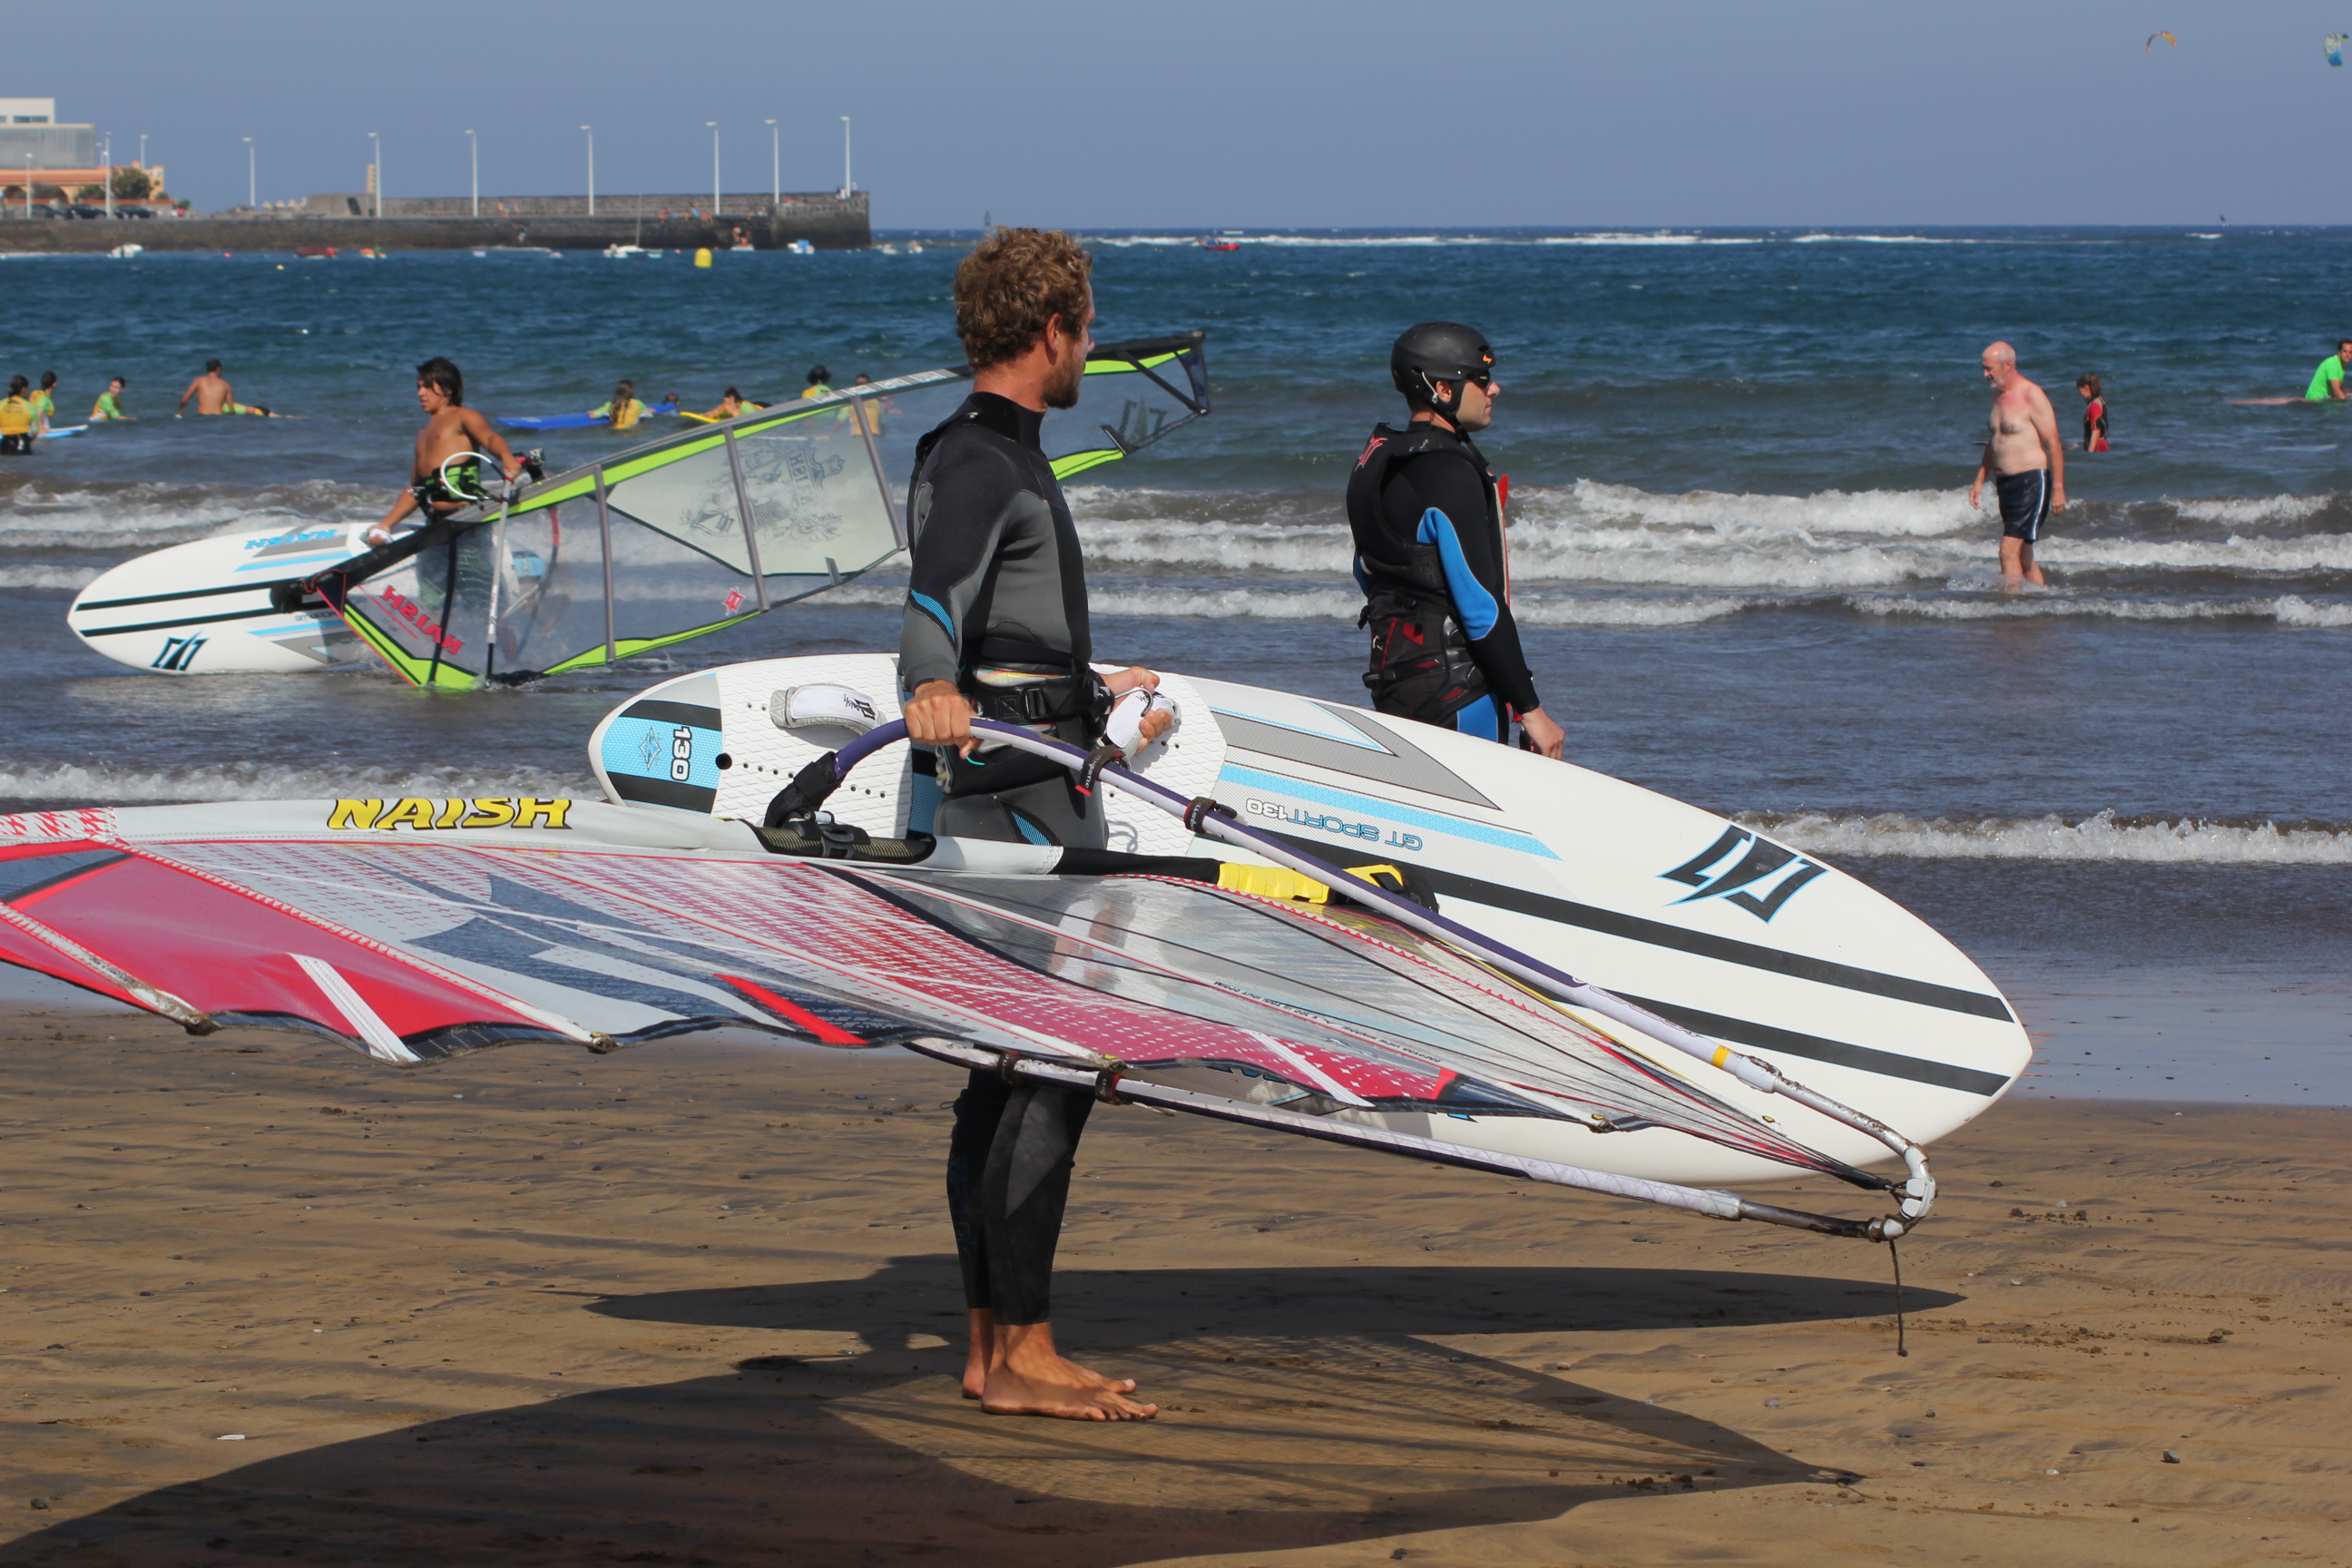 How to carry the Windsurfing Gear